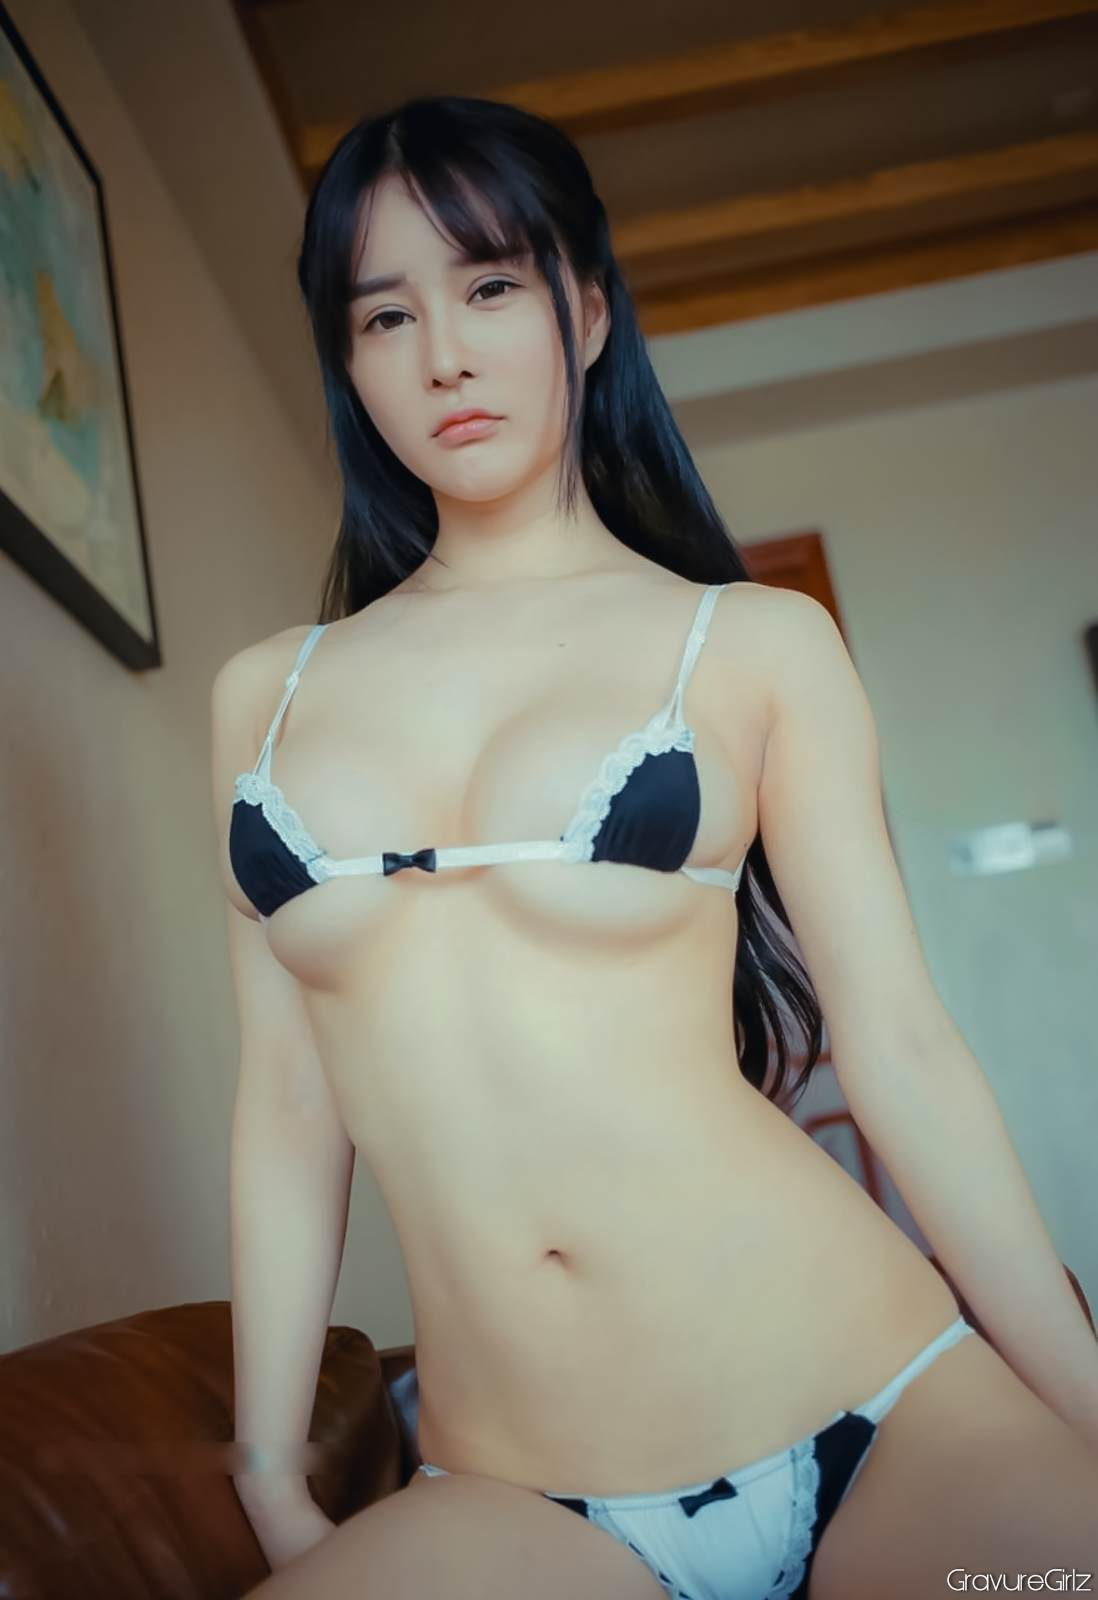 My girl naked pic foto 386